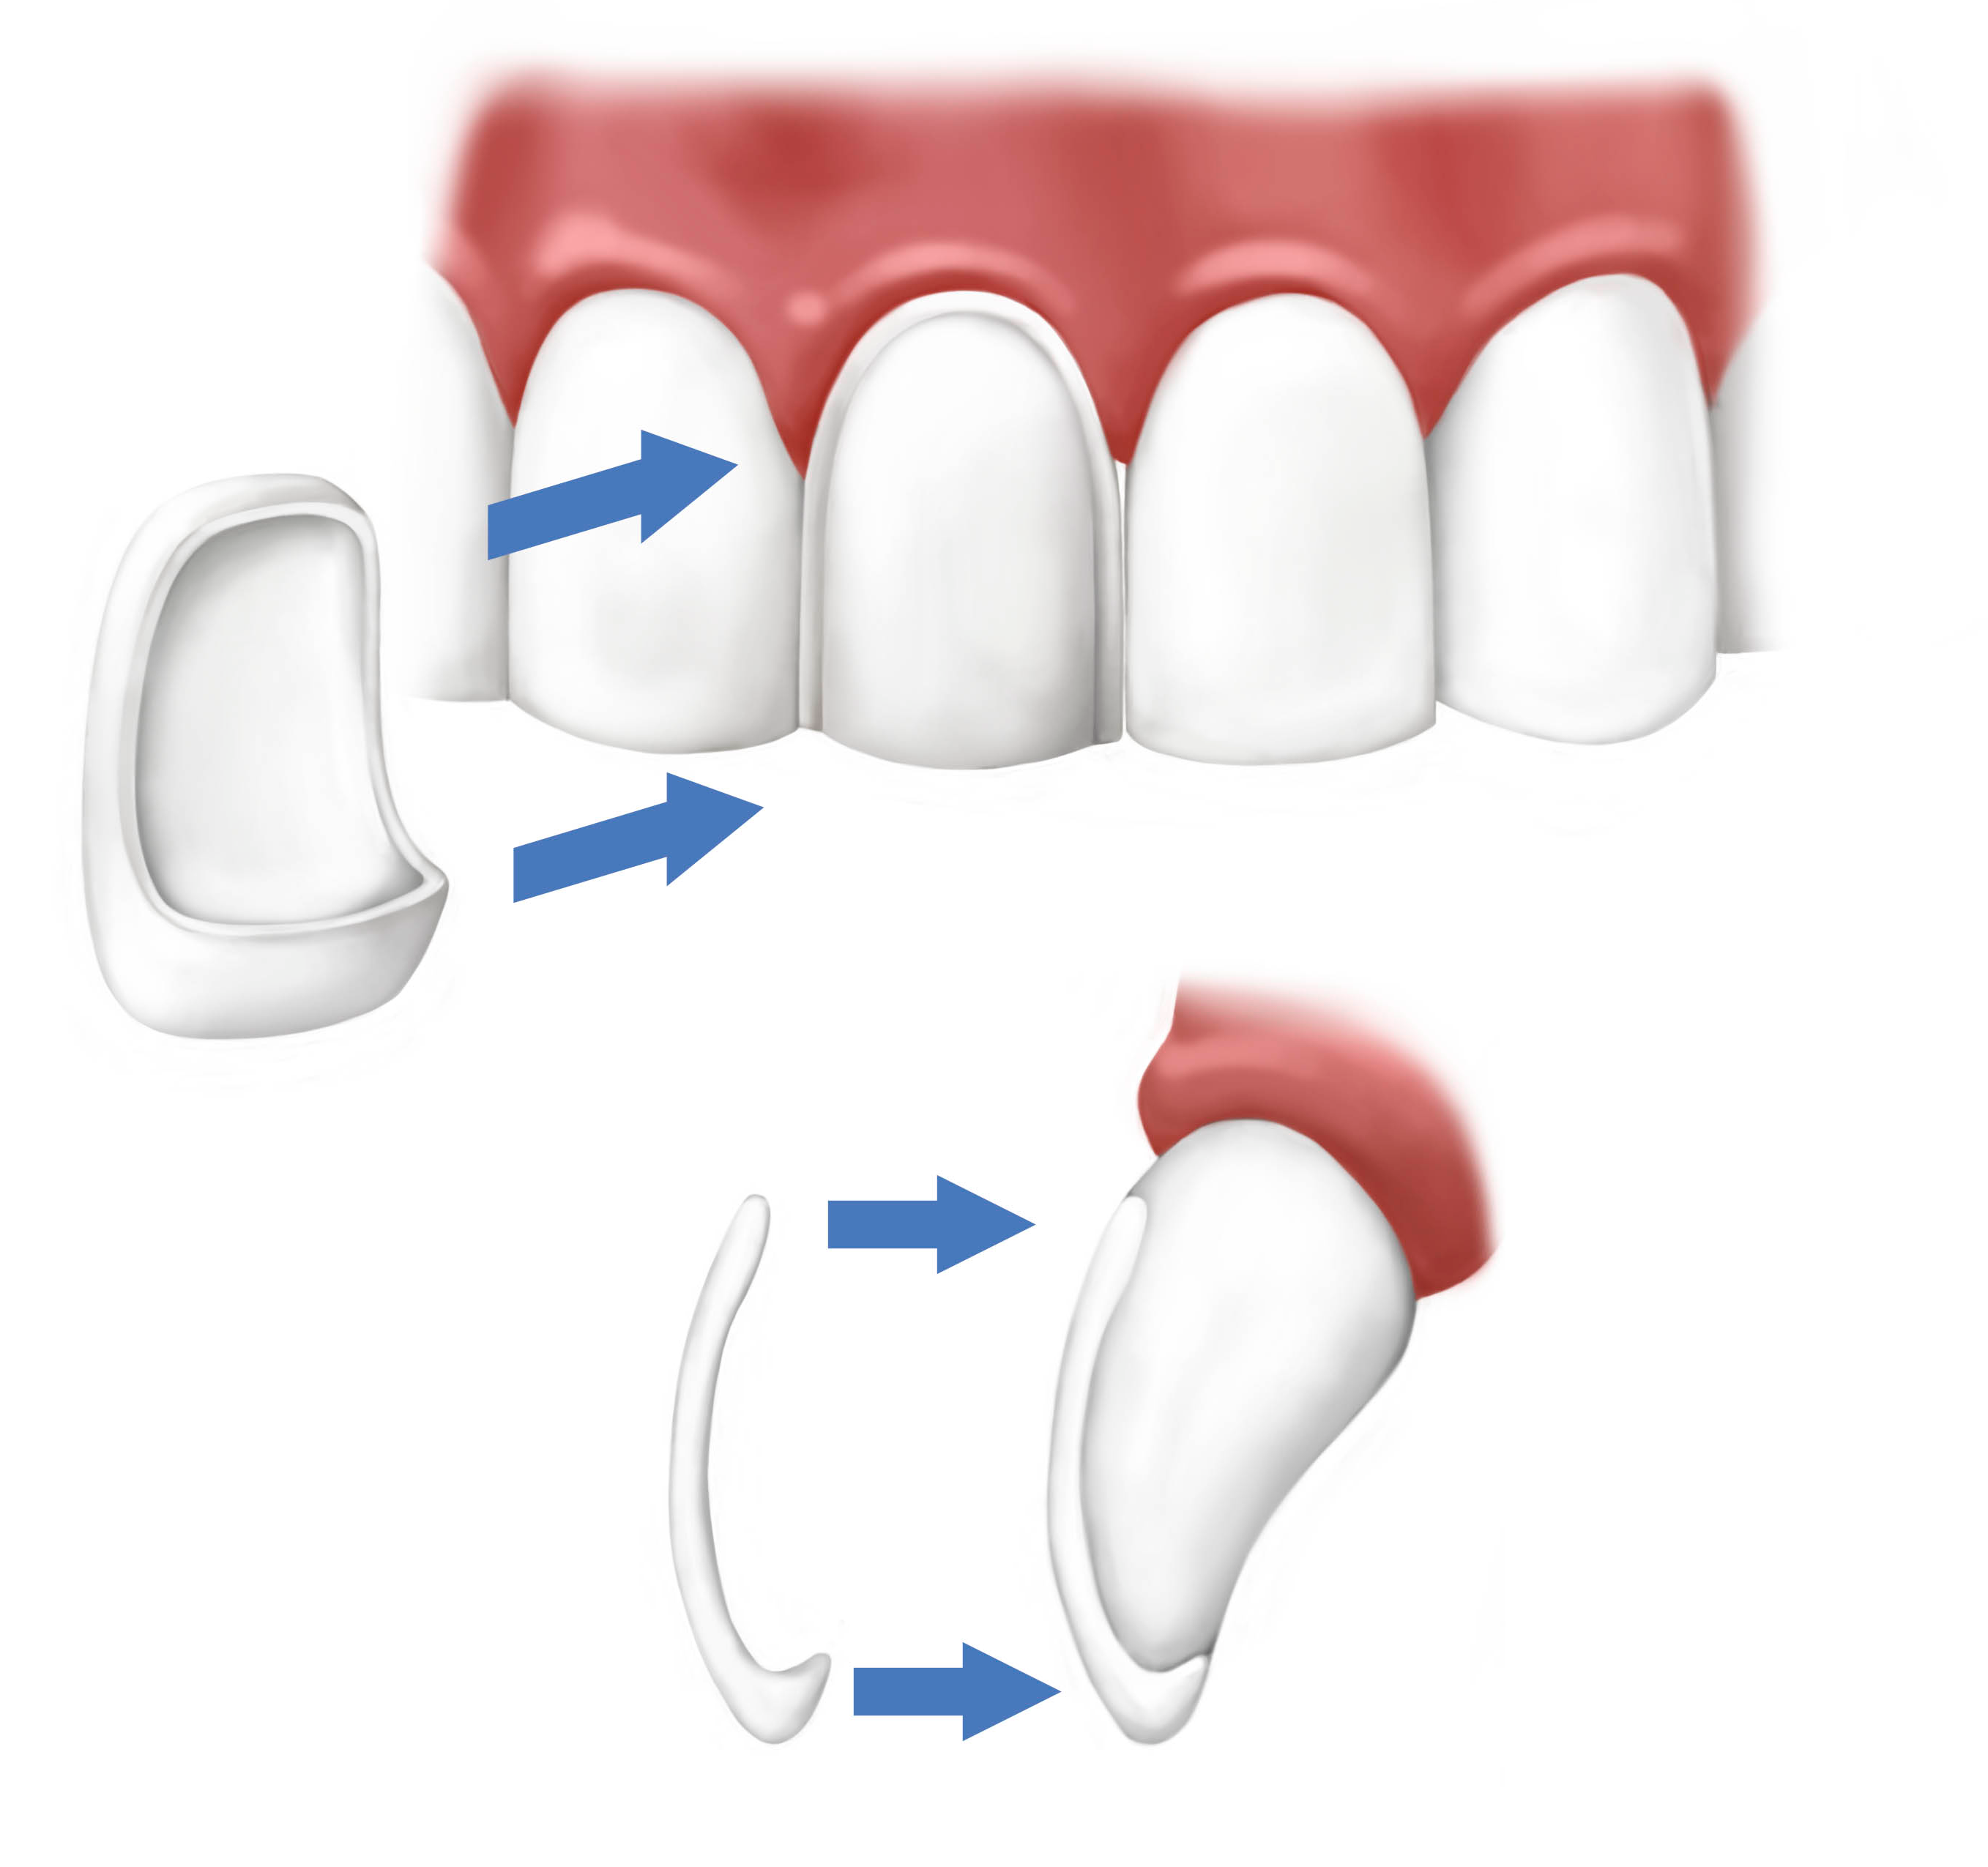 Model of Dental Veneers